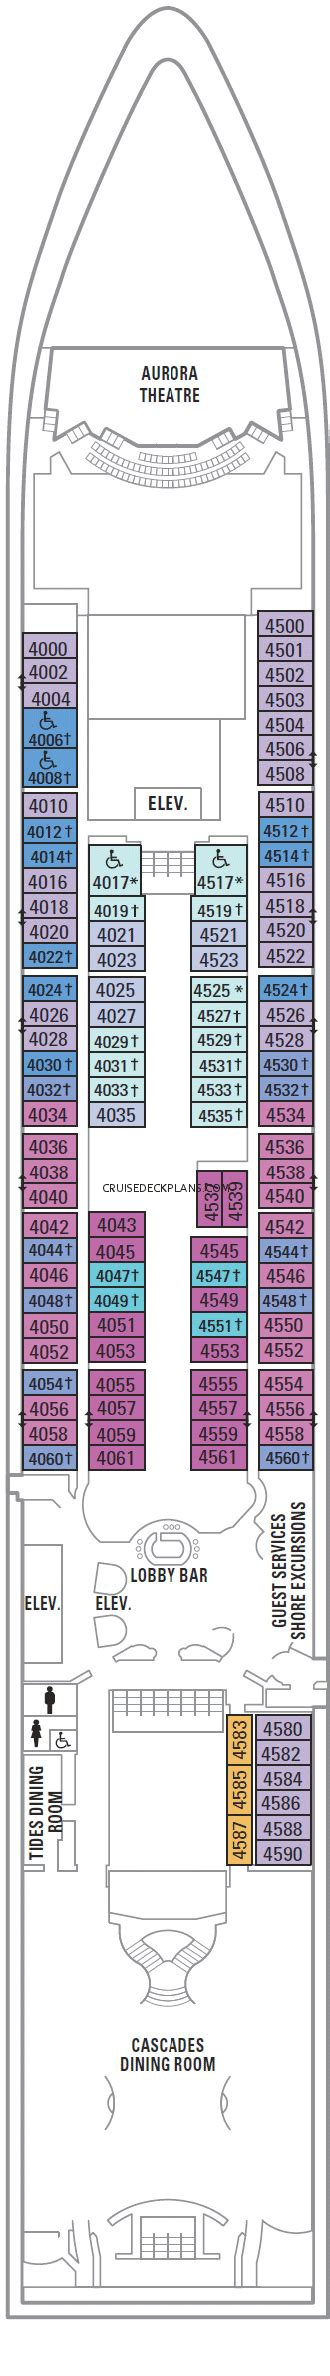 Radiance Of The Seas Deck Plans 4